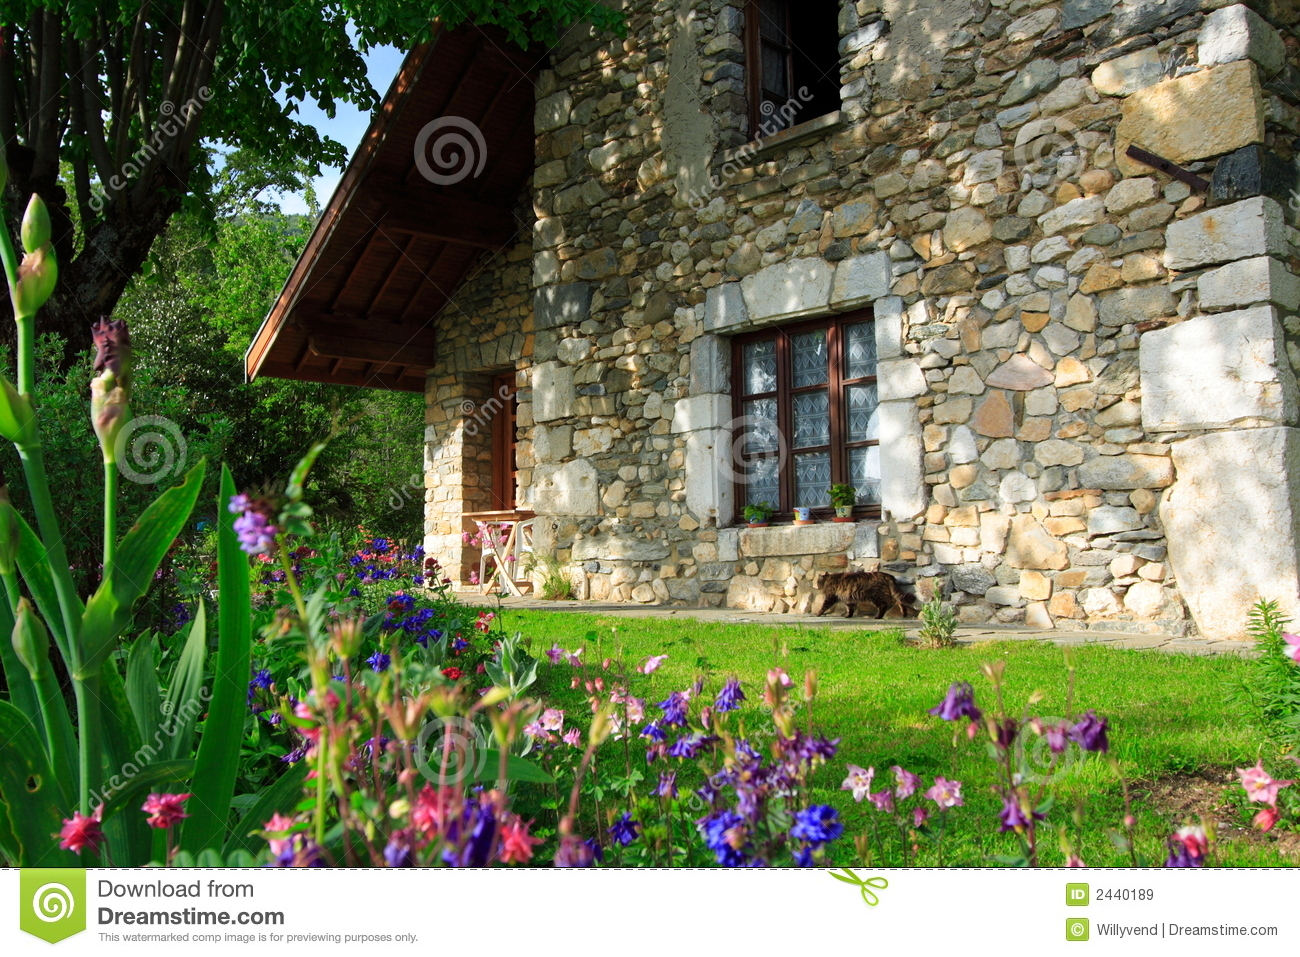 Flowers and old house